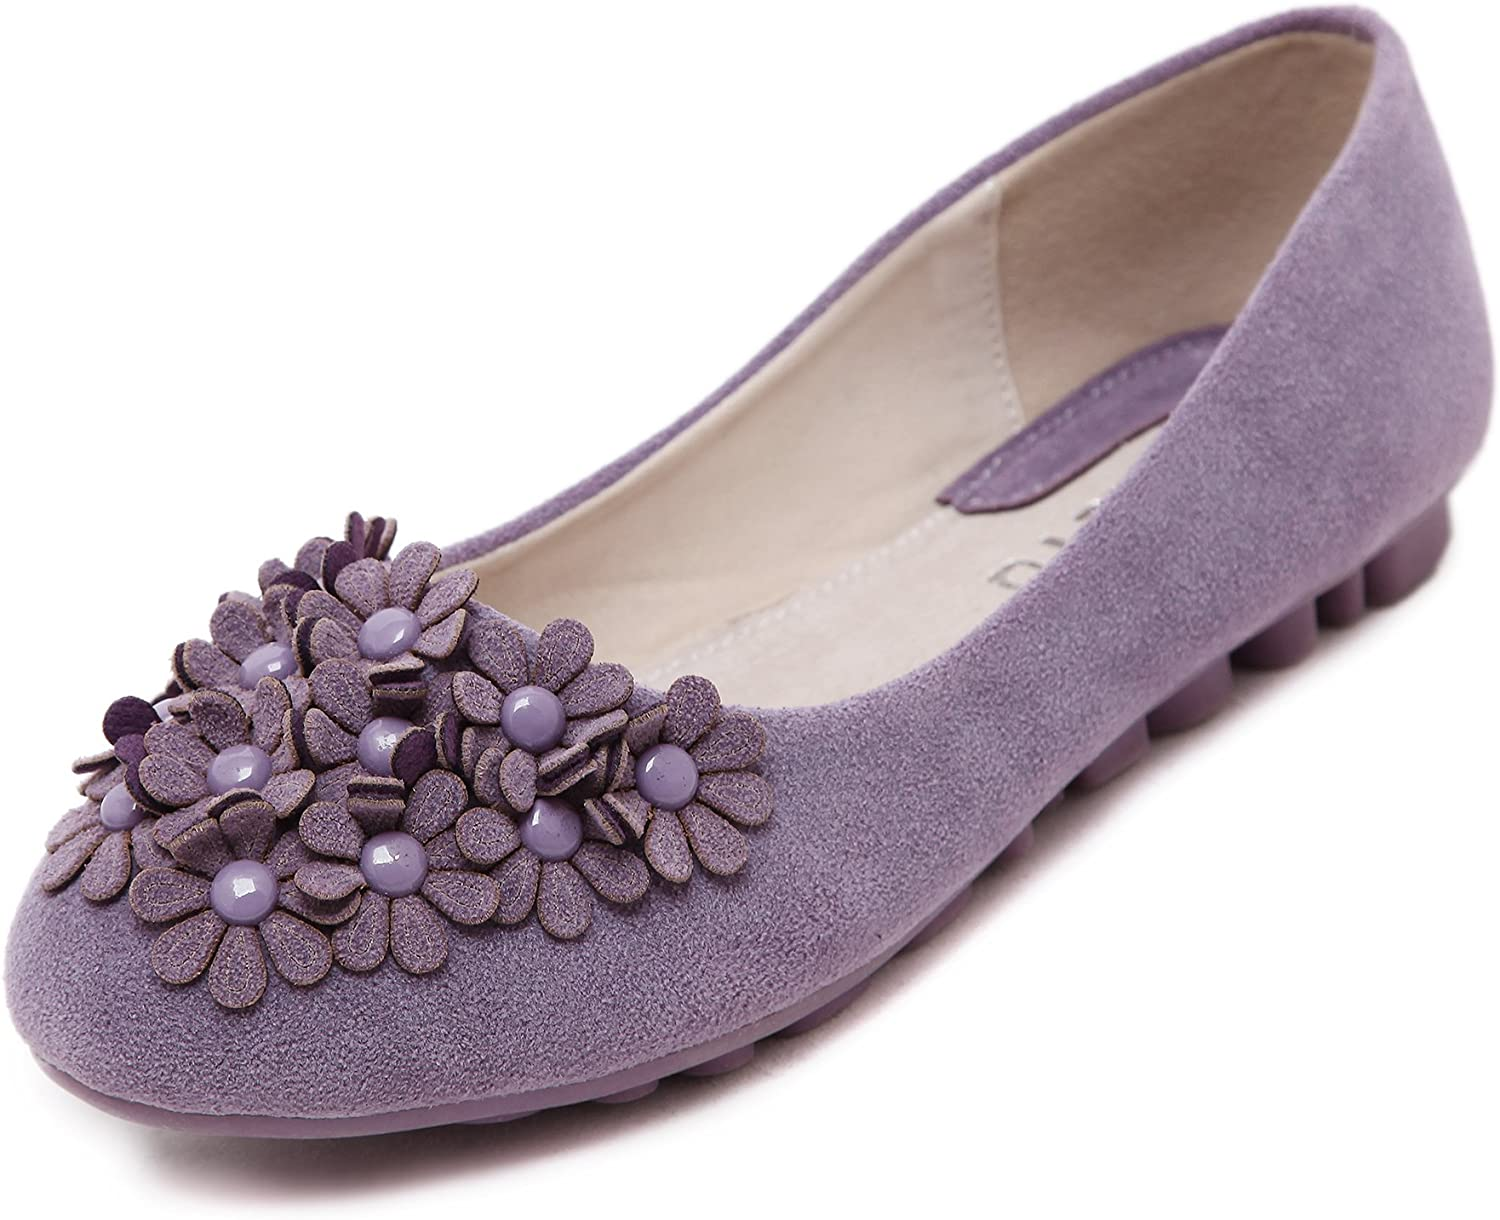 AZMODO Women's Round Toe Slip On Flats shoes A678